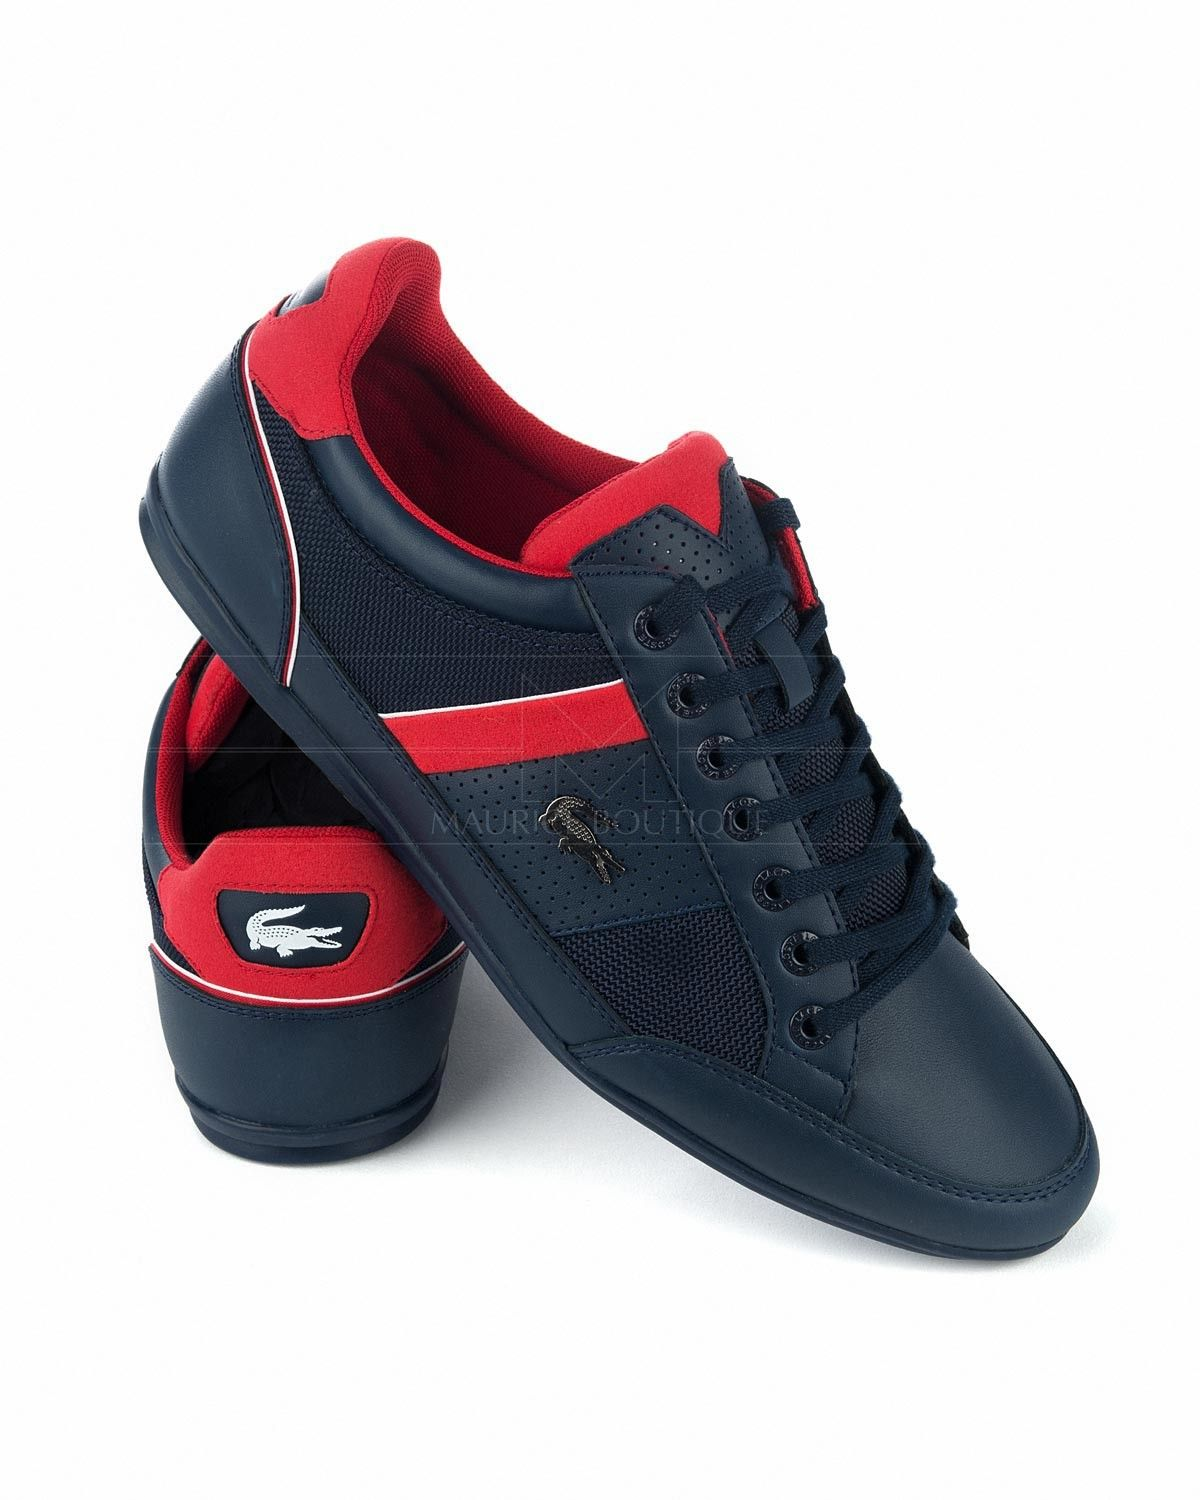 59470d07e489 LACOSTE © Shoes - Navy Blue   Red Chaymon